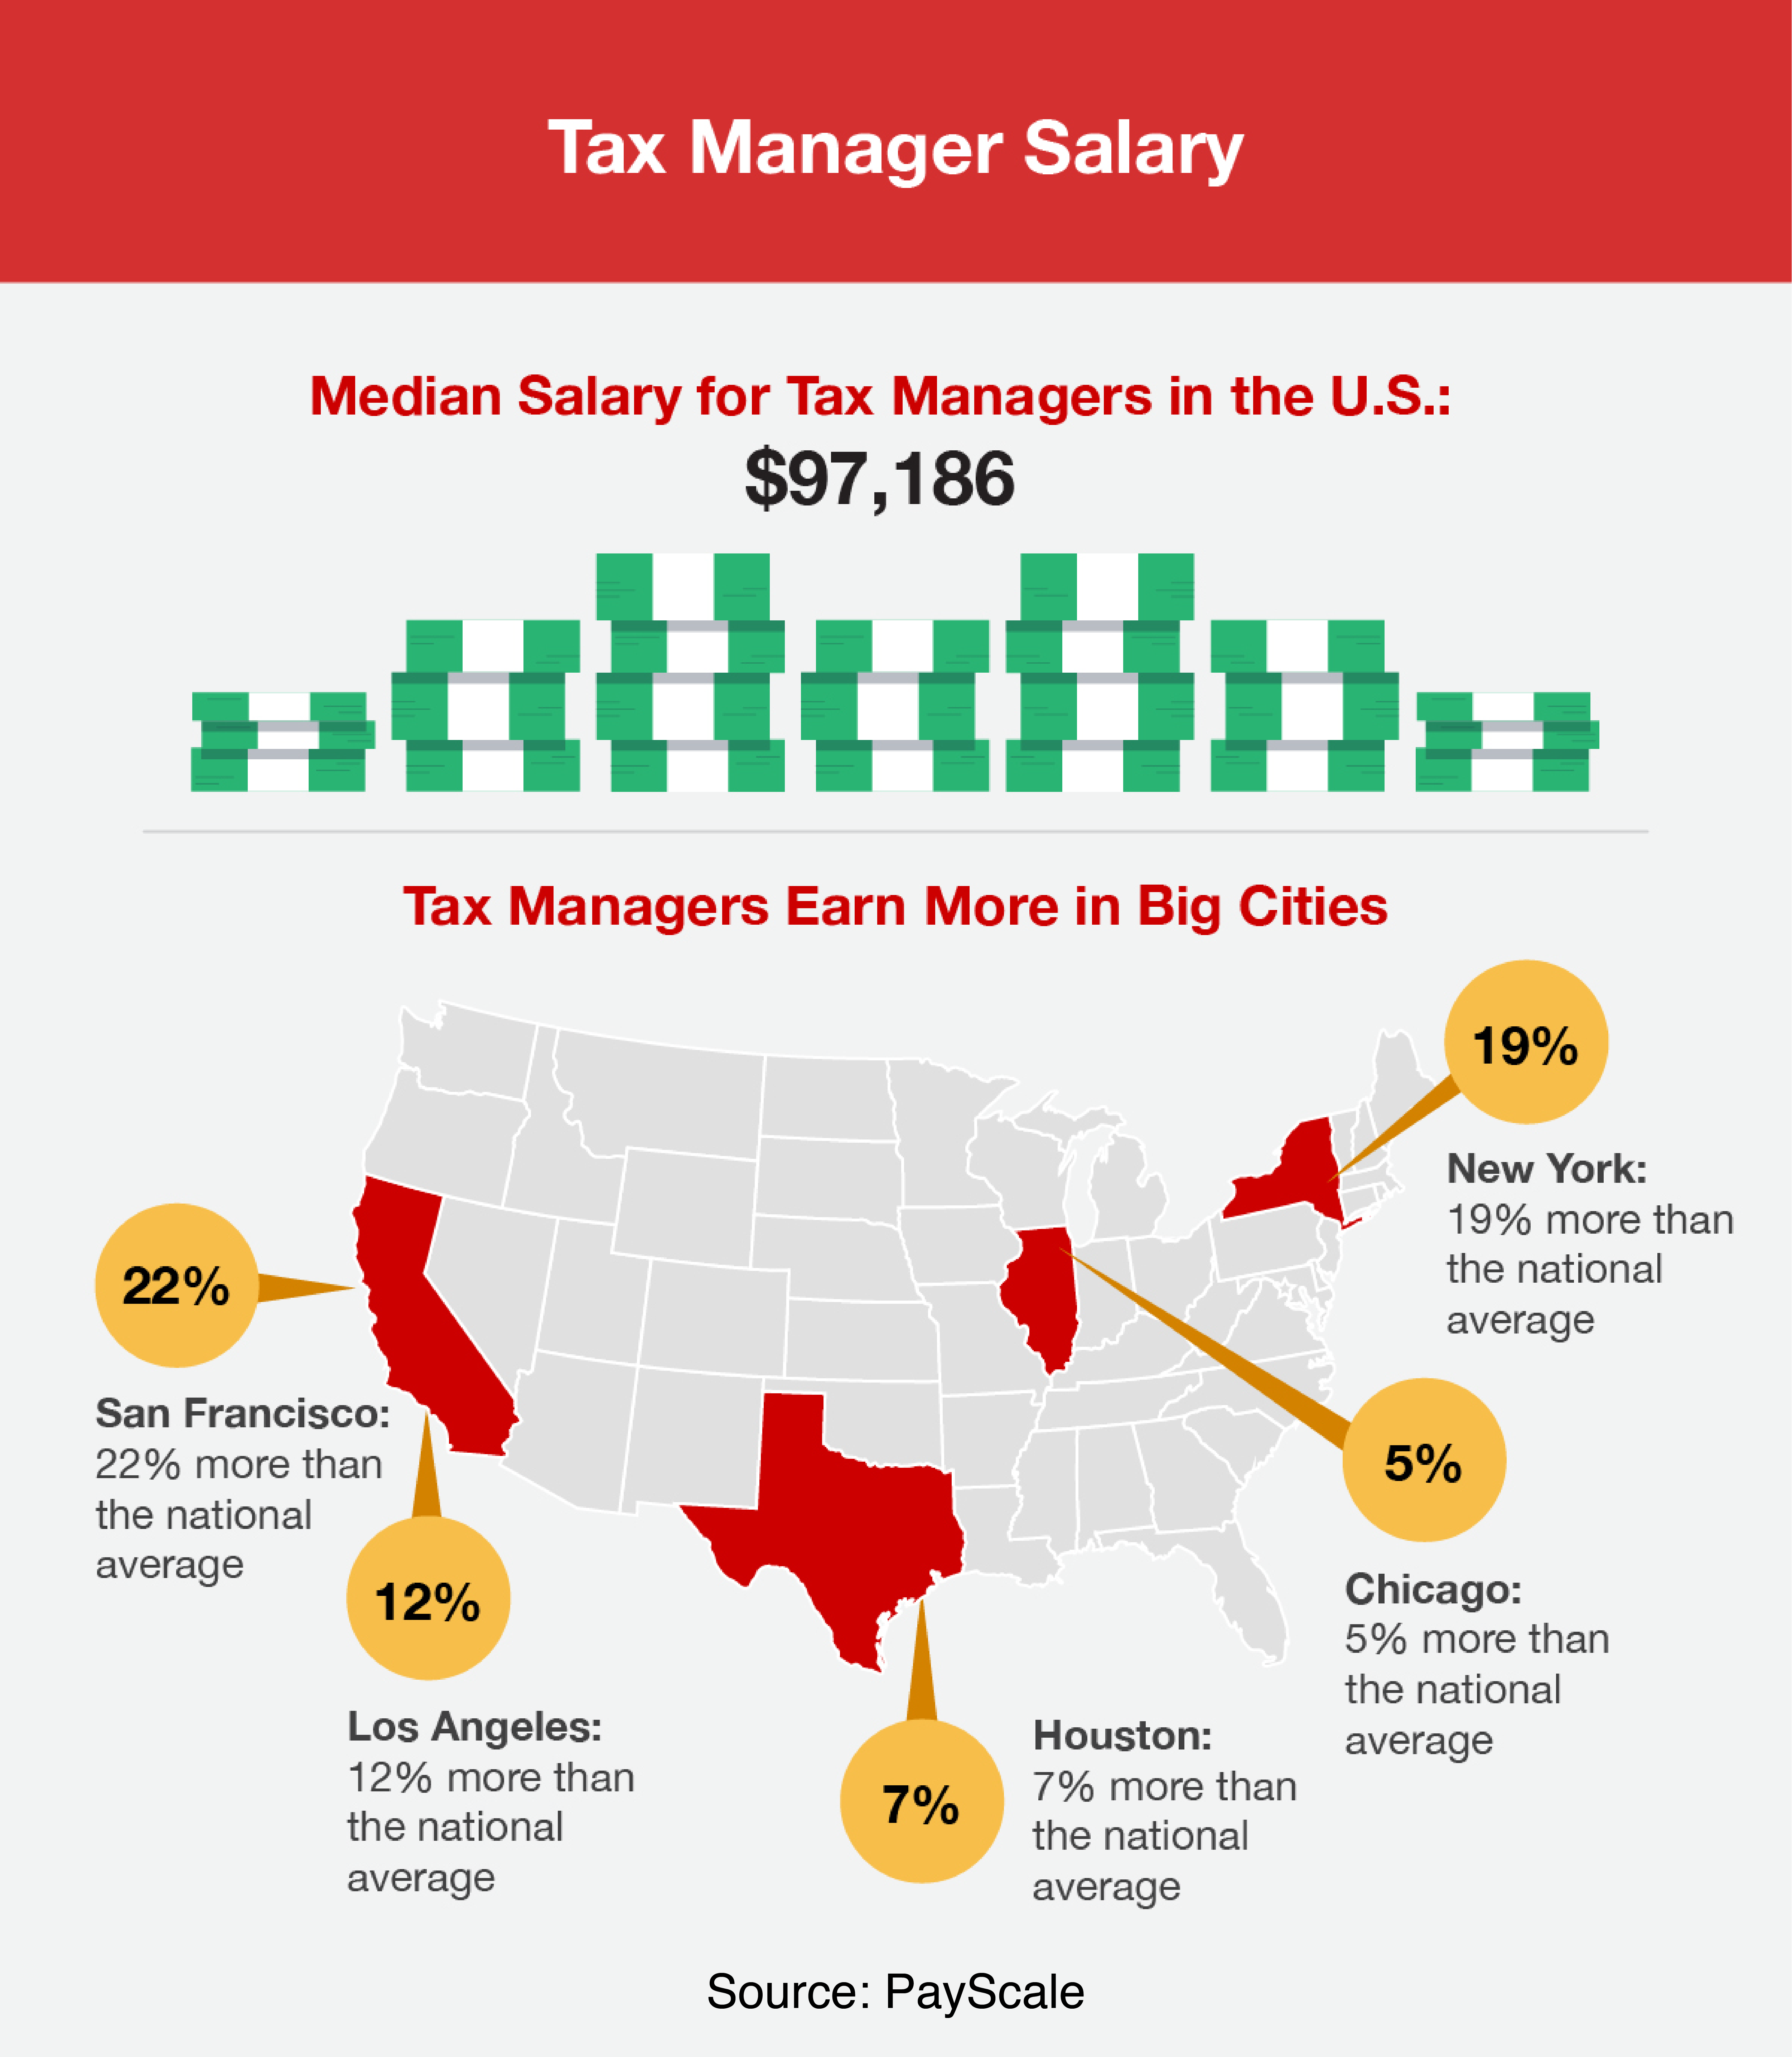 Median salary for tax managers in the U.S.